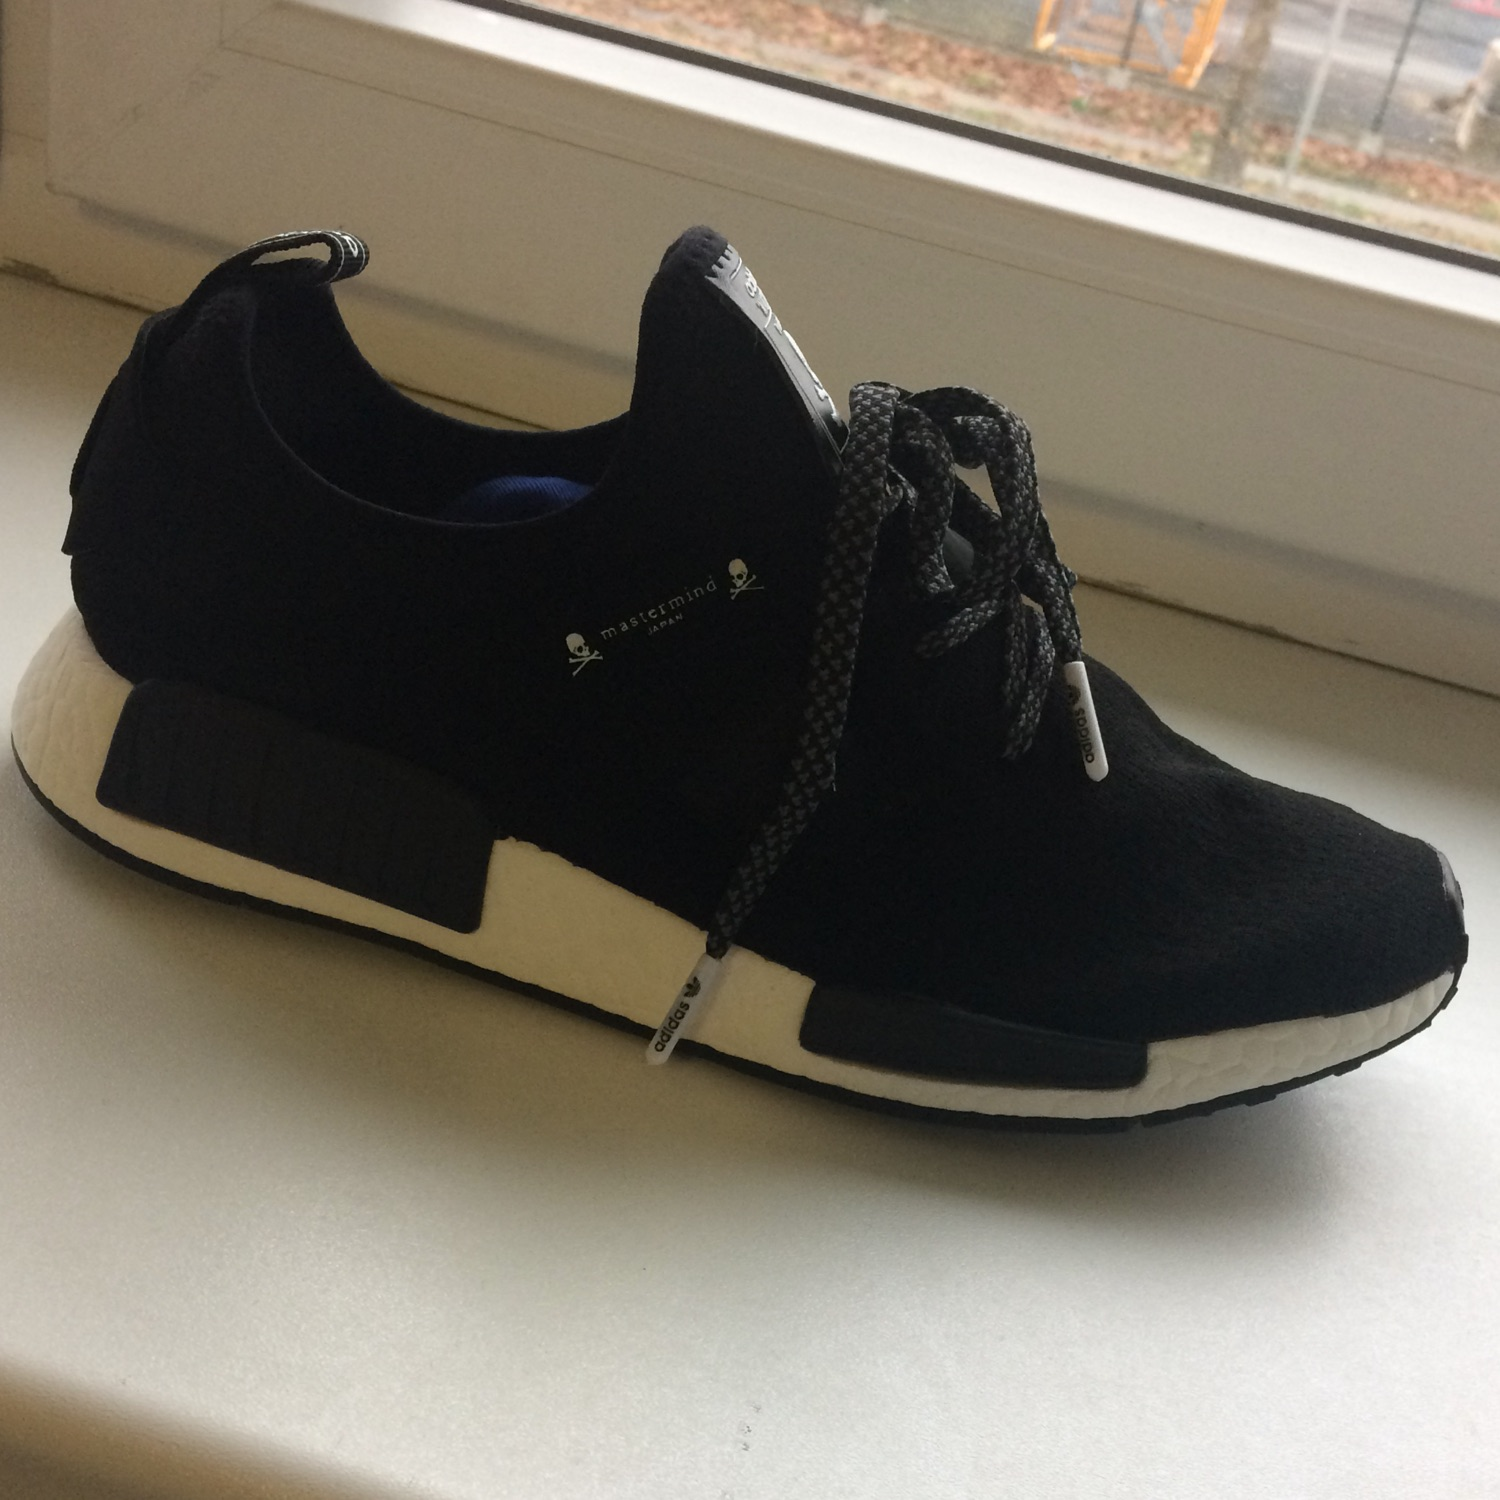 separation shoes 3fb50 36d4f Adidas Nmd Mastermind